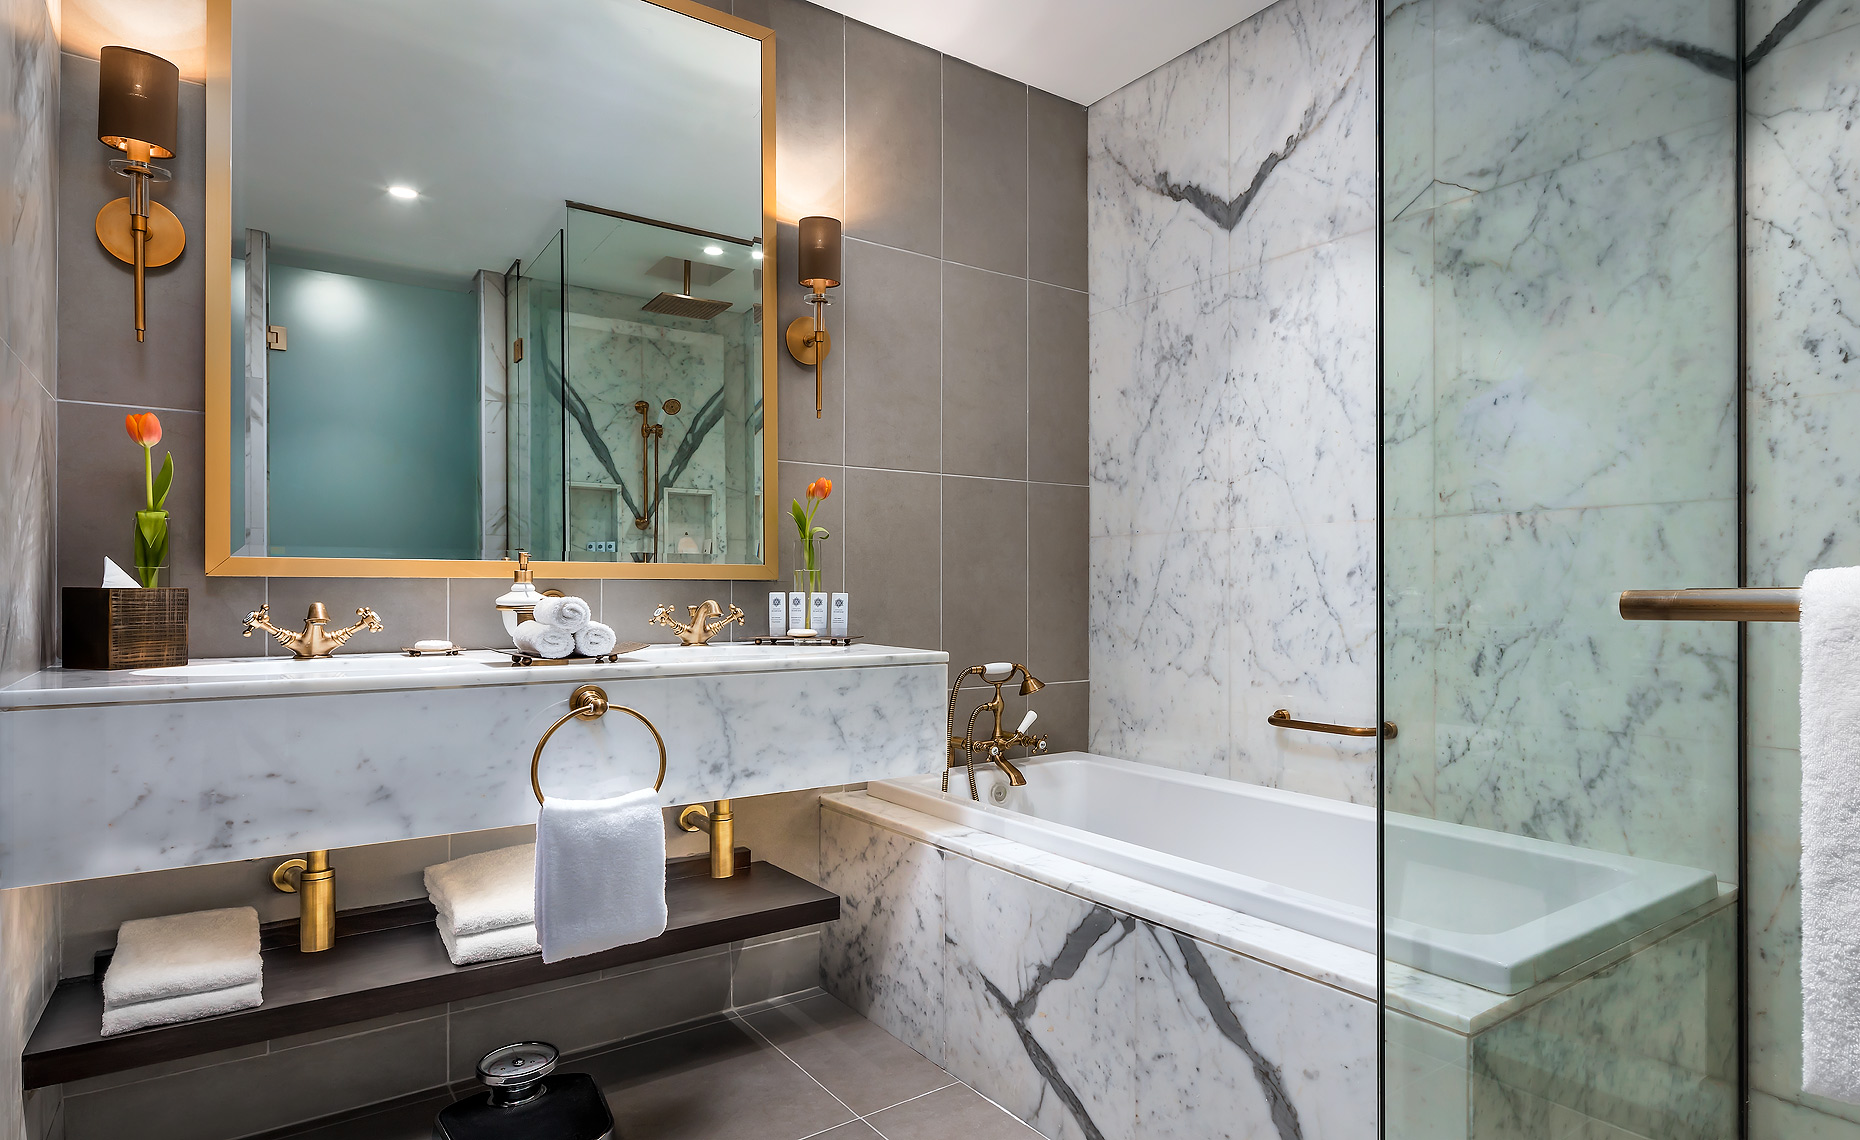 St. Regis Polo Club Hotel Dubai - Bathroom - Hotel Photography